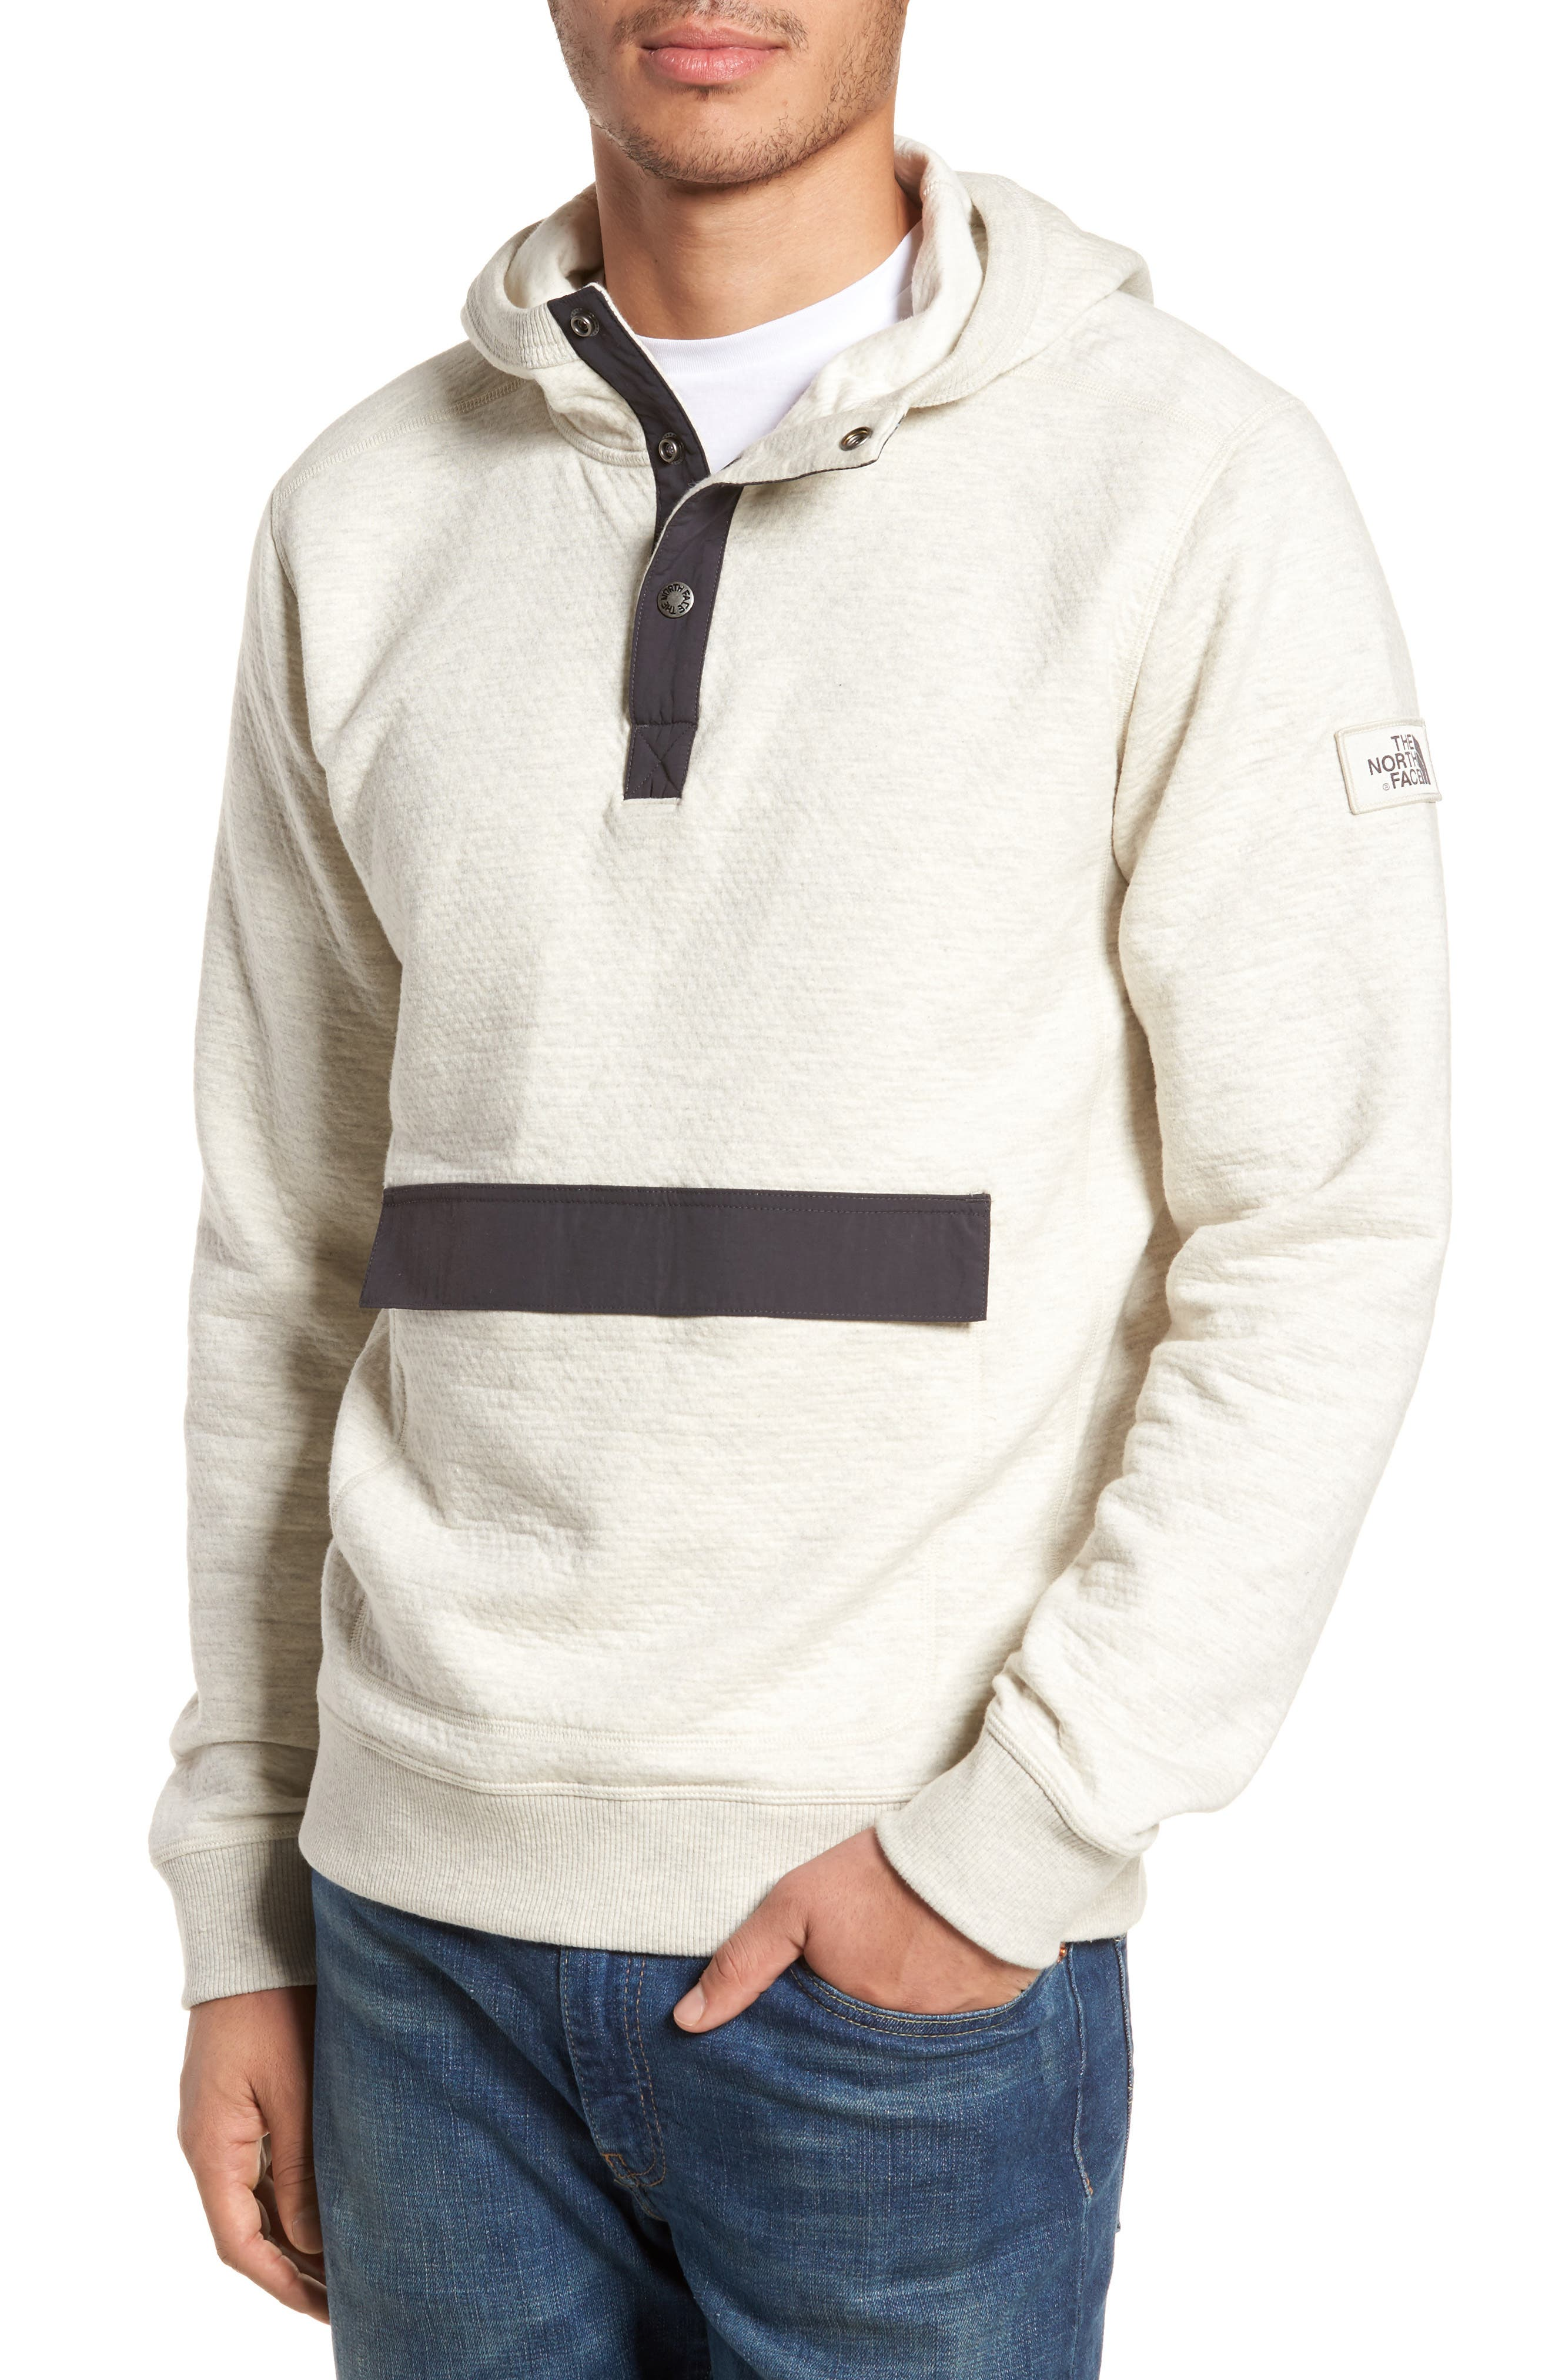 Re-Source Hoodie,                         Main,                         color, Wild Oat Heather